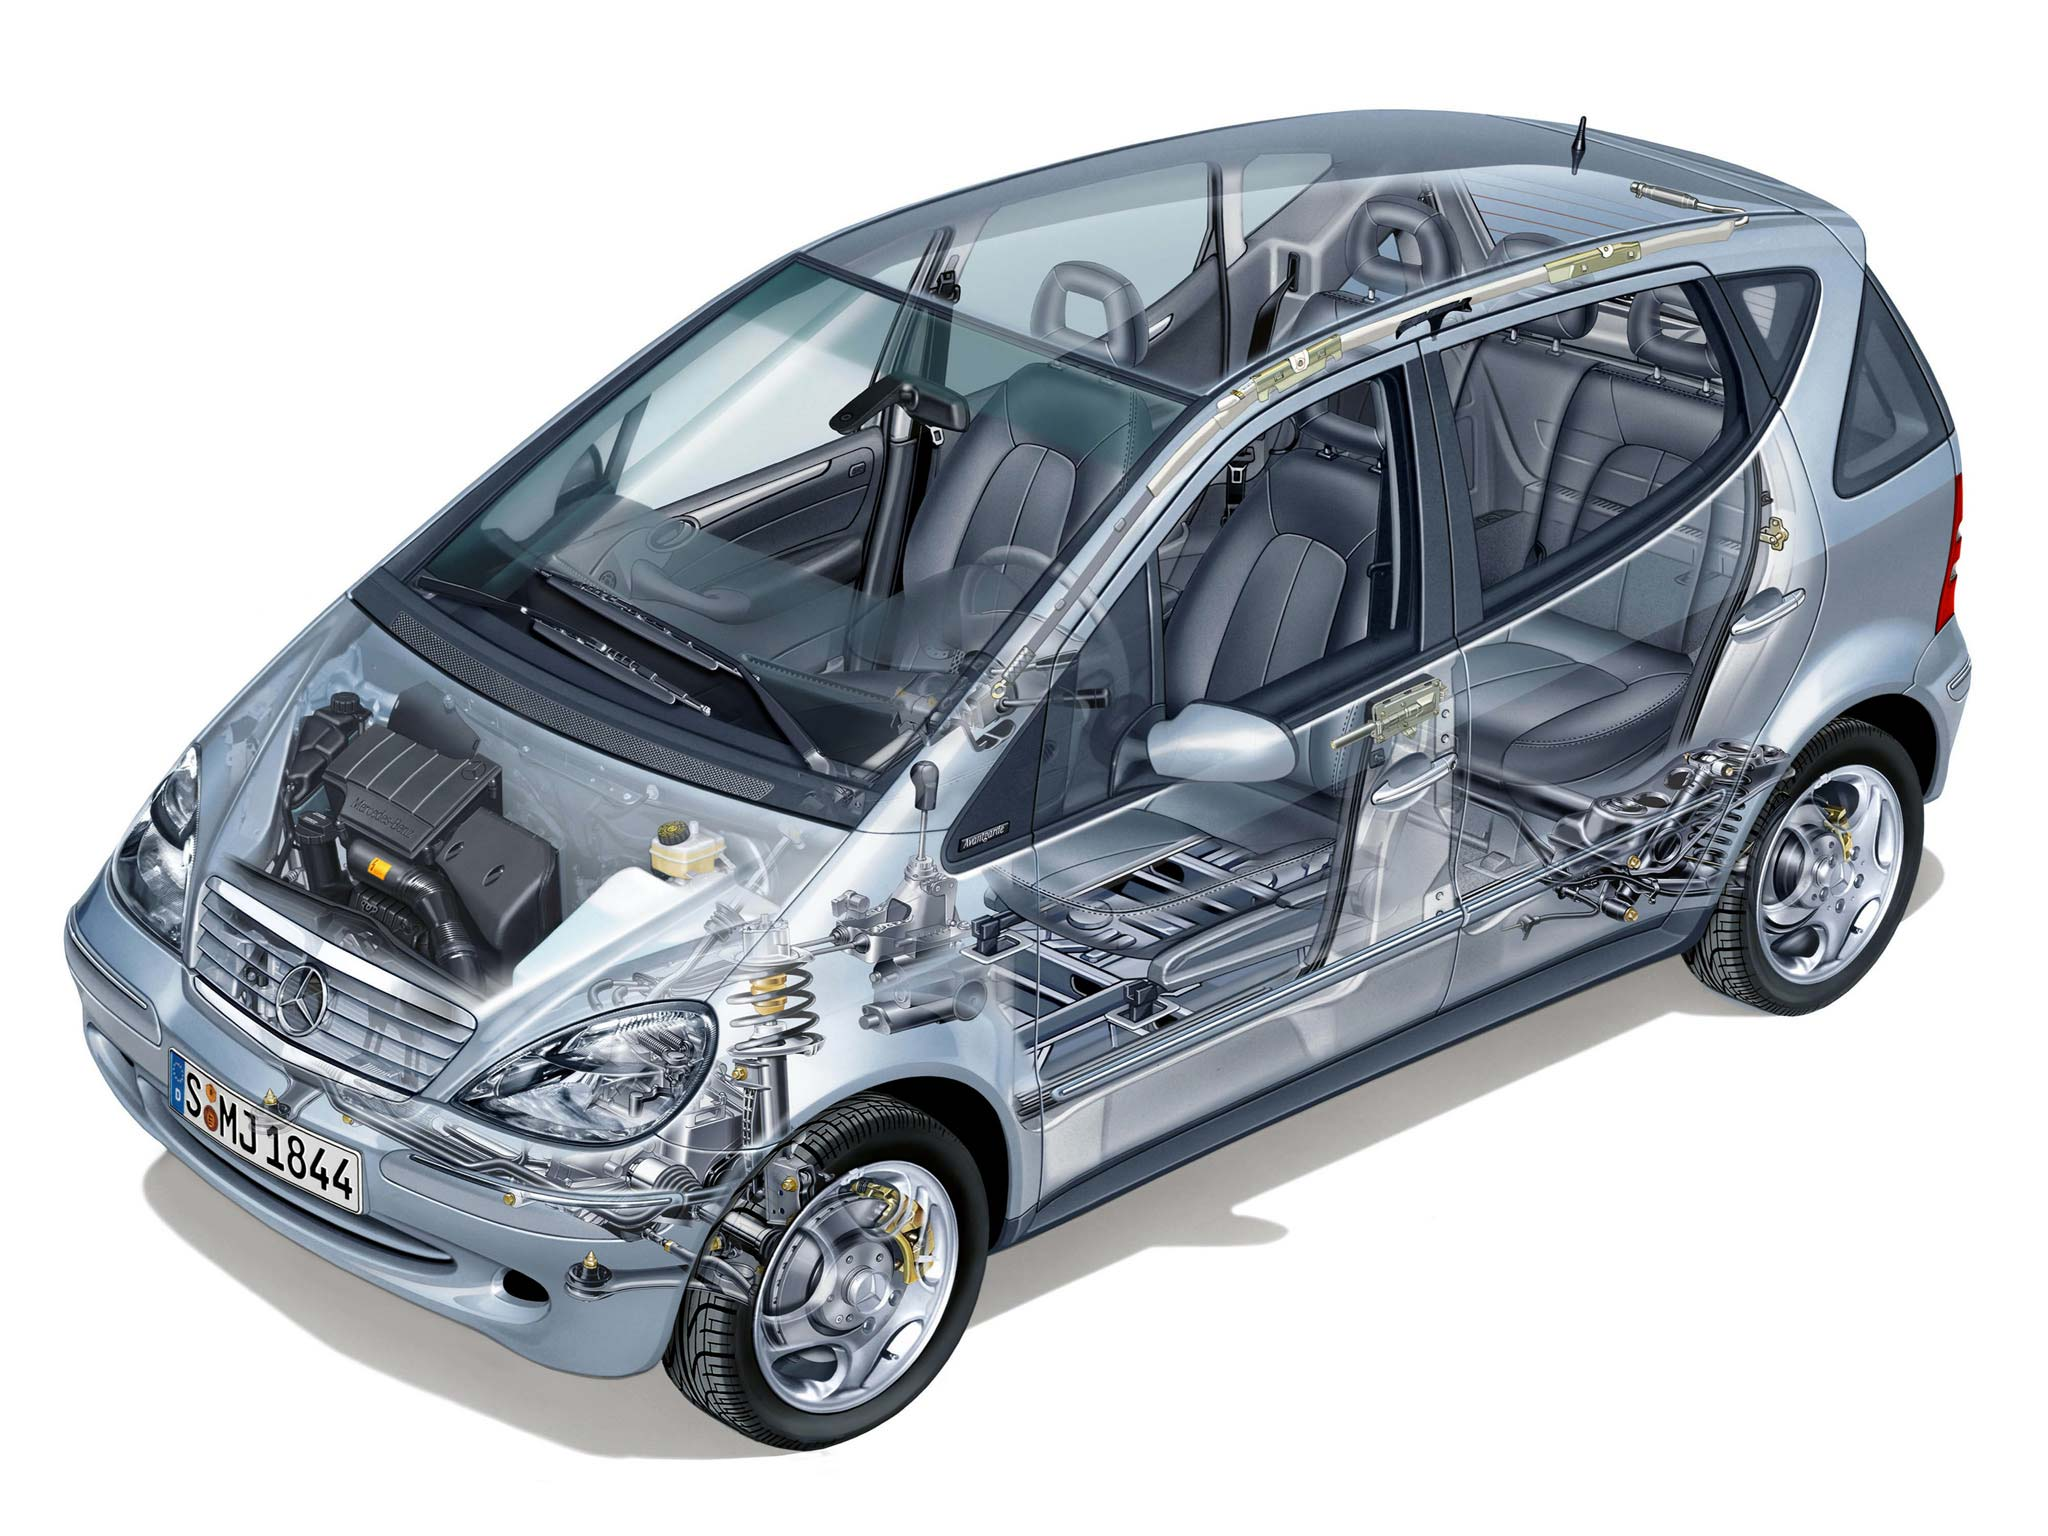 Mercedes-Benz A-class cutaway drawing